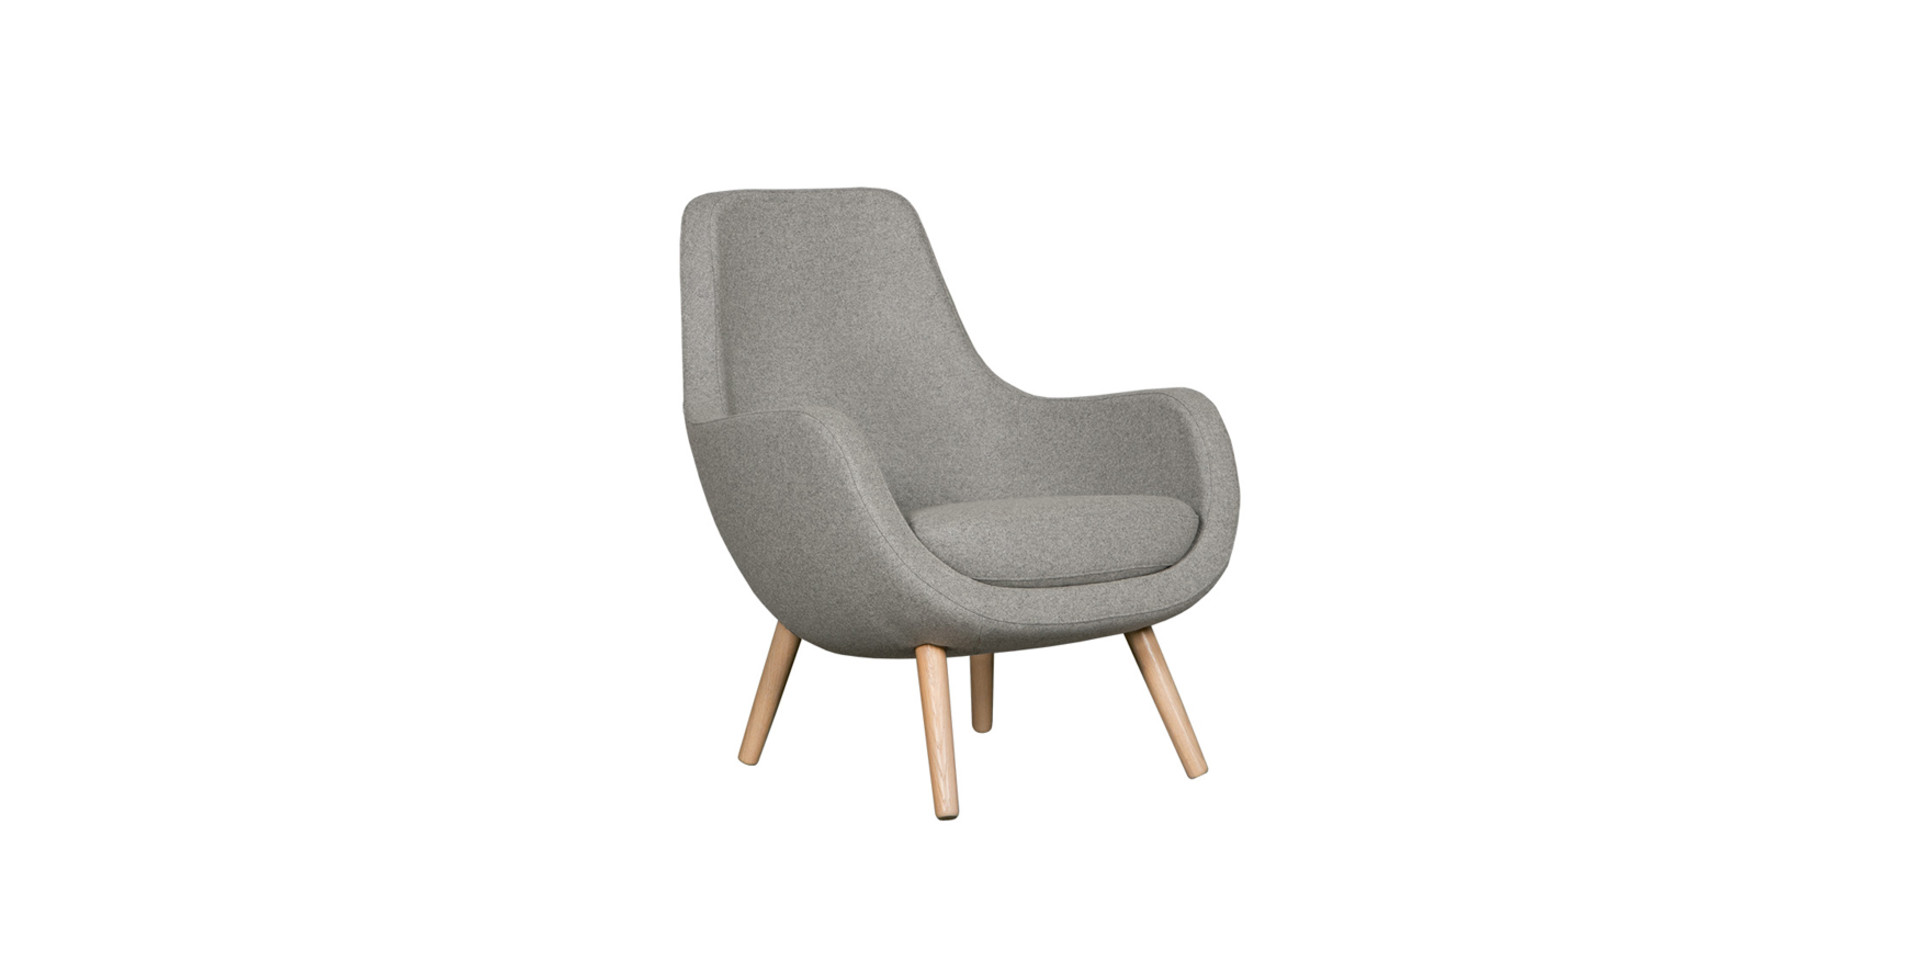 STEFANI_armchair_panno1000_light_grey_feet_oak_bleached_2